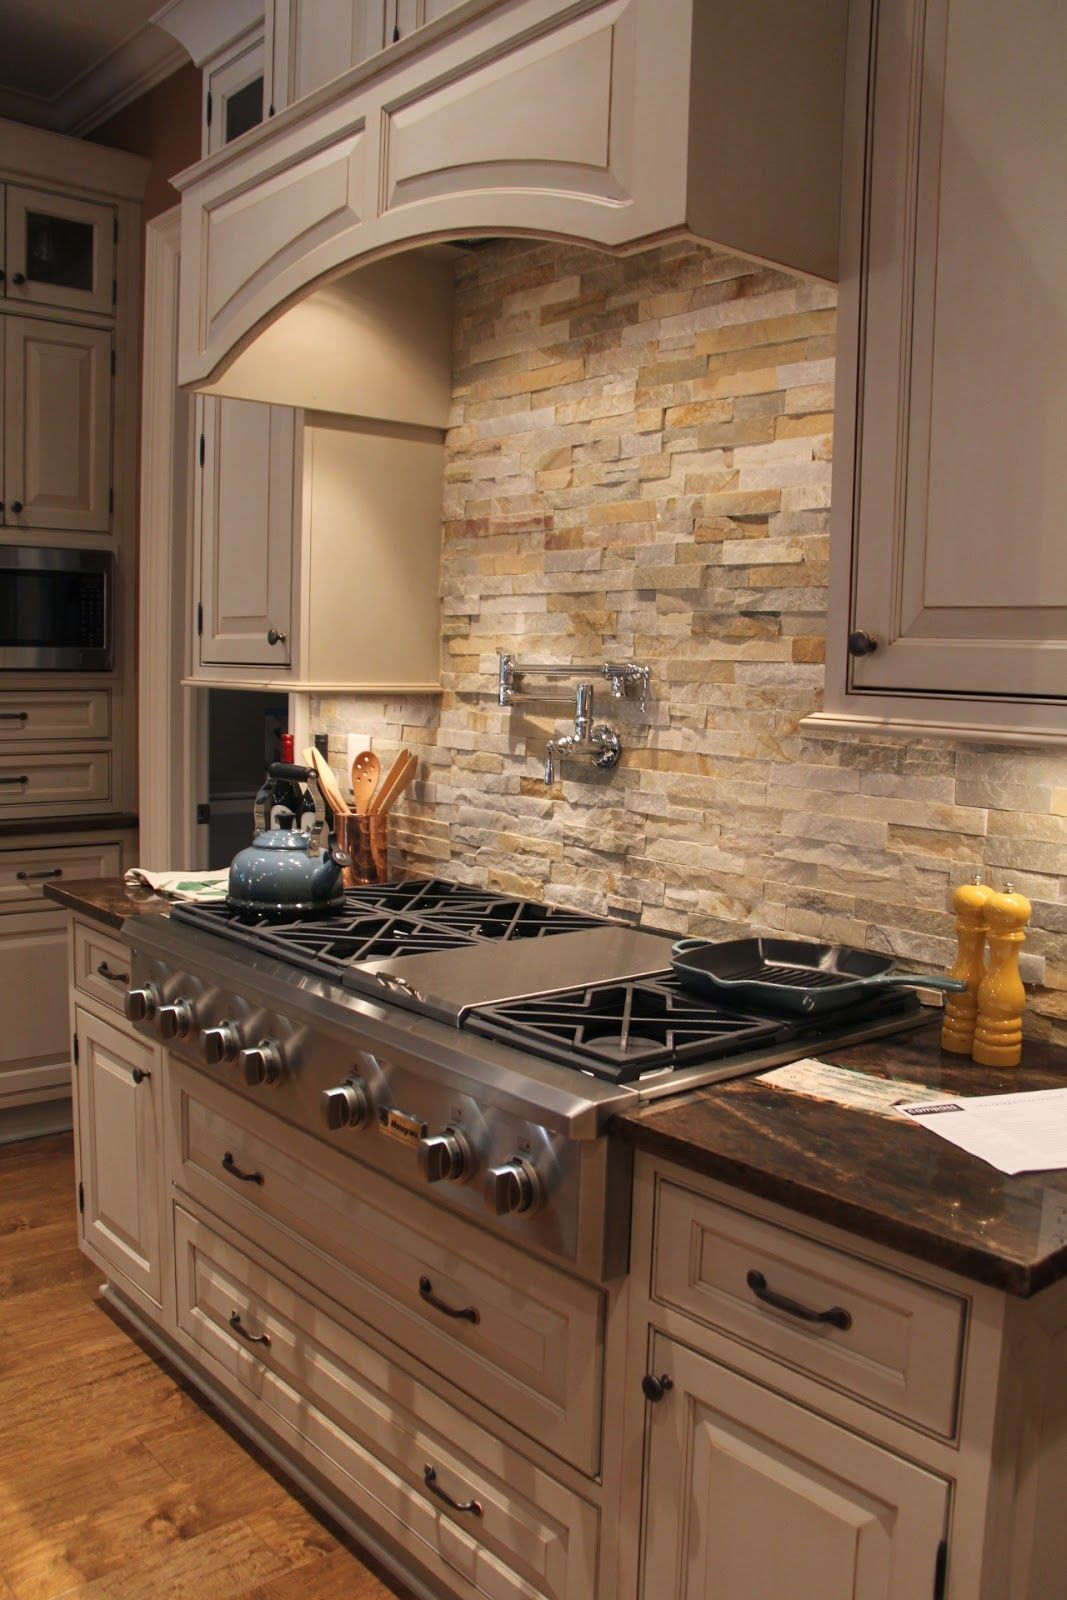 Superior Kitchen Backsplash Ideas 2014 Part - 7: Stack Stone Kitchen Backsplashu2026 Ideas To Replace The Backsplash In Our New  House.